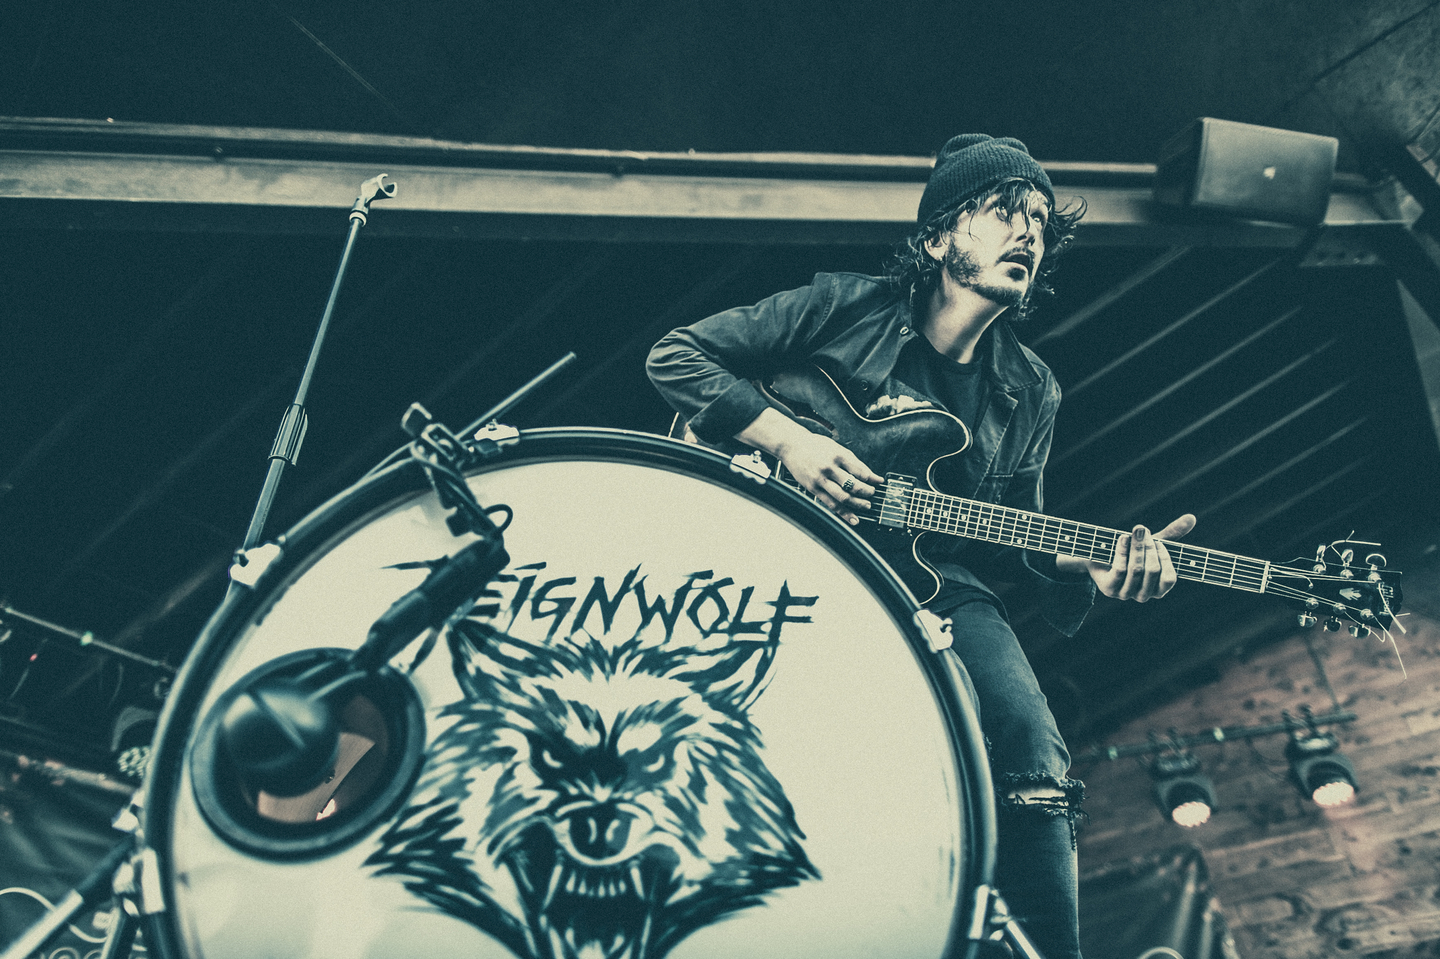 Reignwolf performs onstage at the Brooklyn Bowl Family Reunion at Scoot Inn.